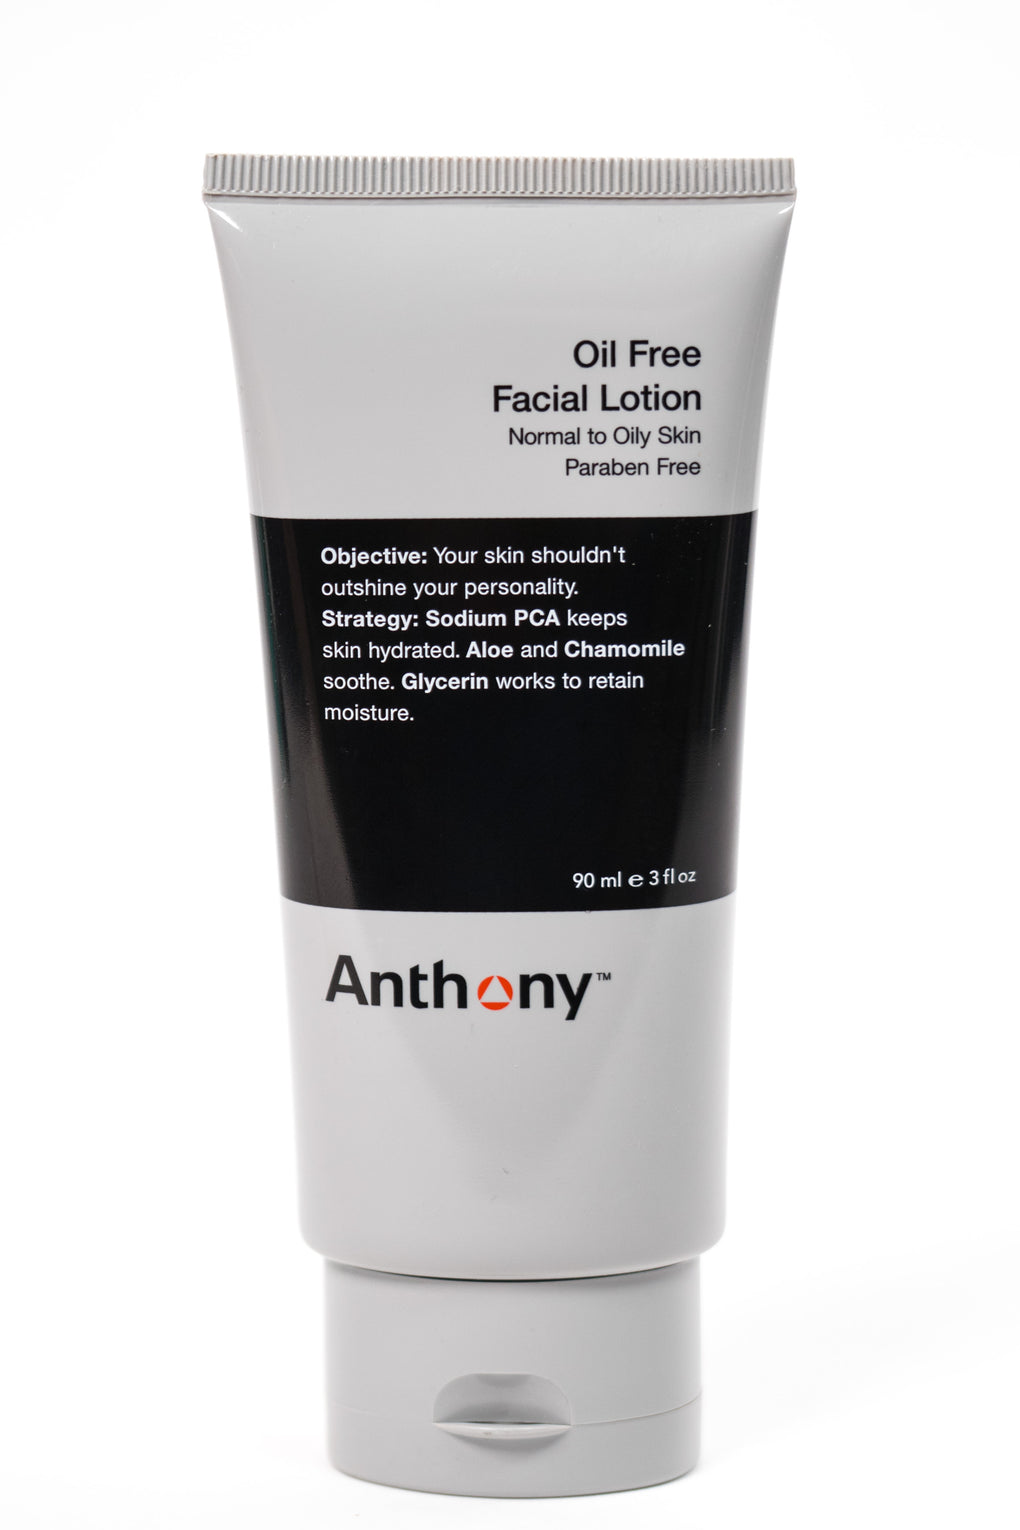 Anthony Oil-Free Lotion at Consigliere